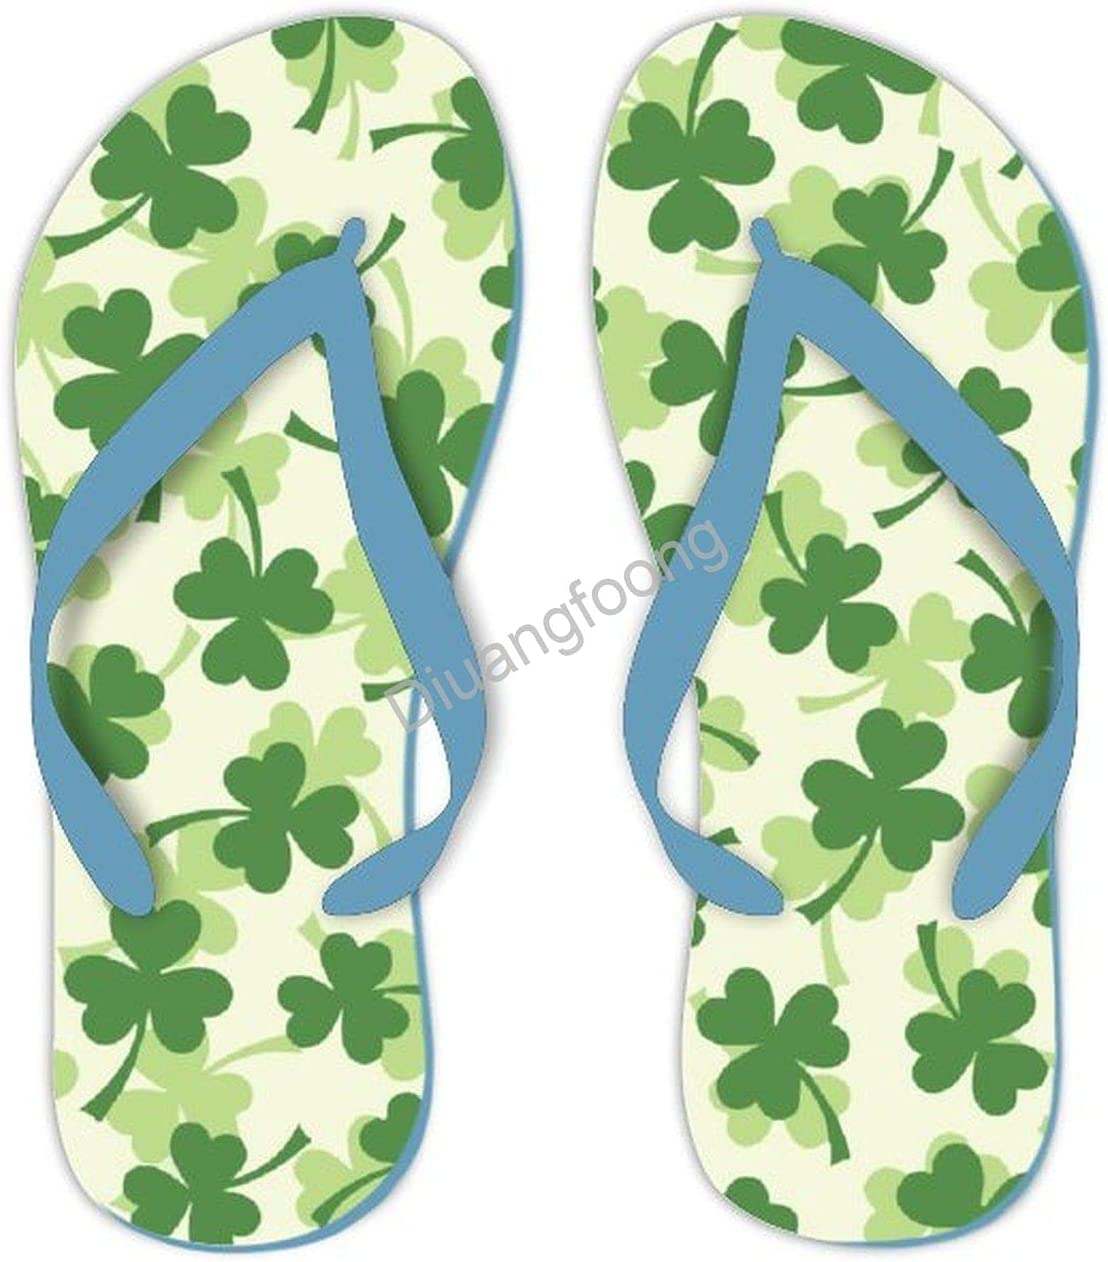 St. Patrick's Day Flip Flop Pr Sandals Max 90% OFF Comfortable Fashion Max 68% OFF Thong